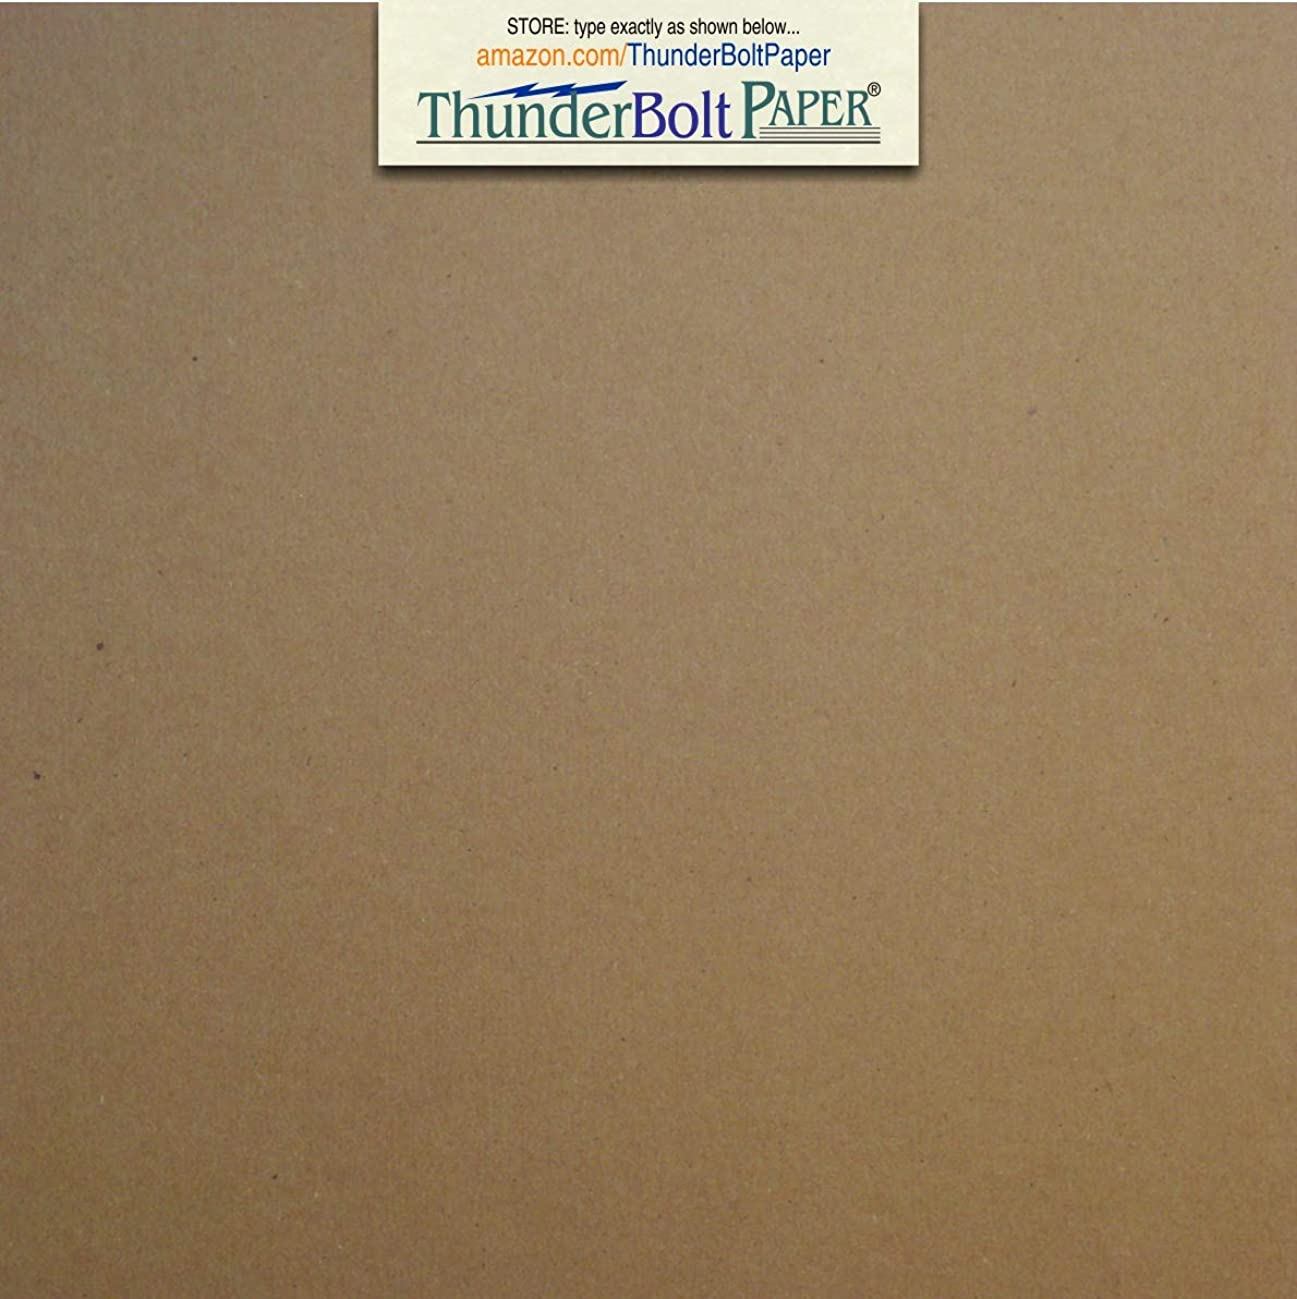 50 Sheets Chipboard 46pt (Point) 6 X 6 Inches Heavy Weight Square Scrapbook Size .046 Caliper Thick Cardboard Craft and Packing Brown Kraft Paper Board